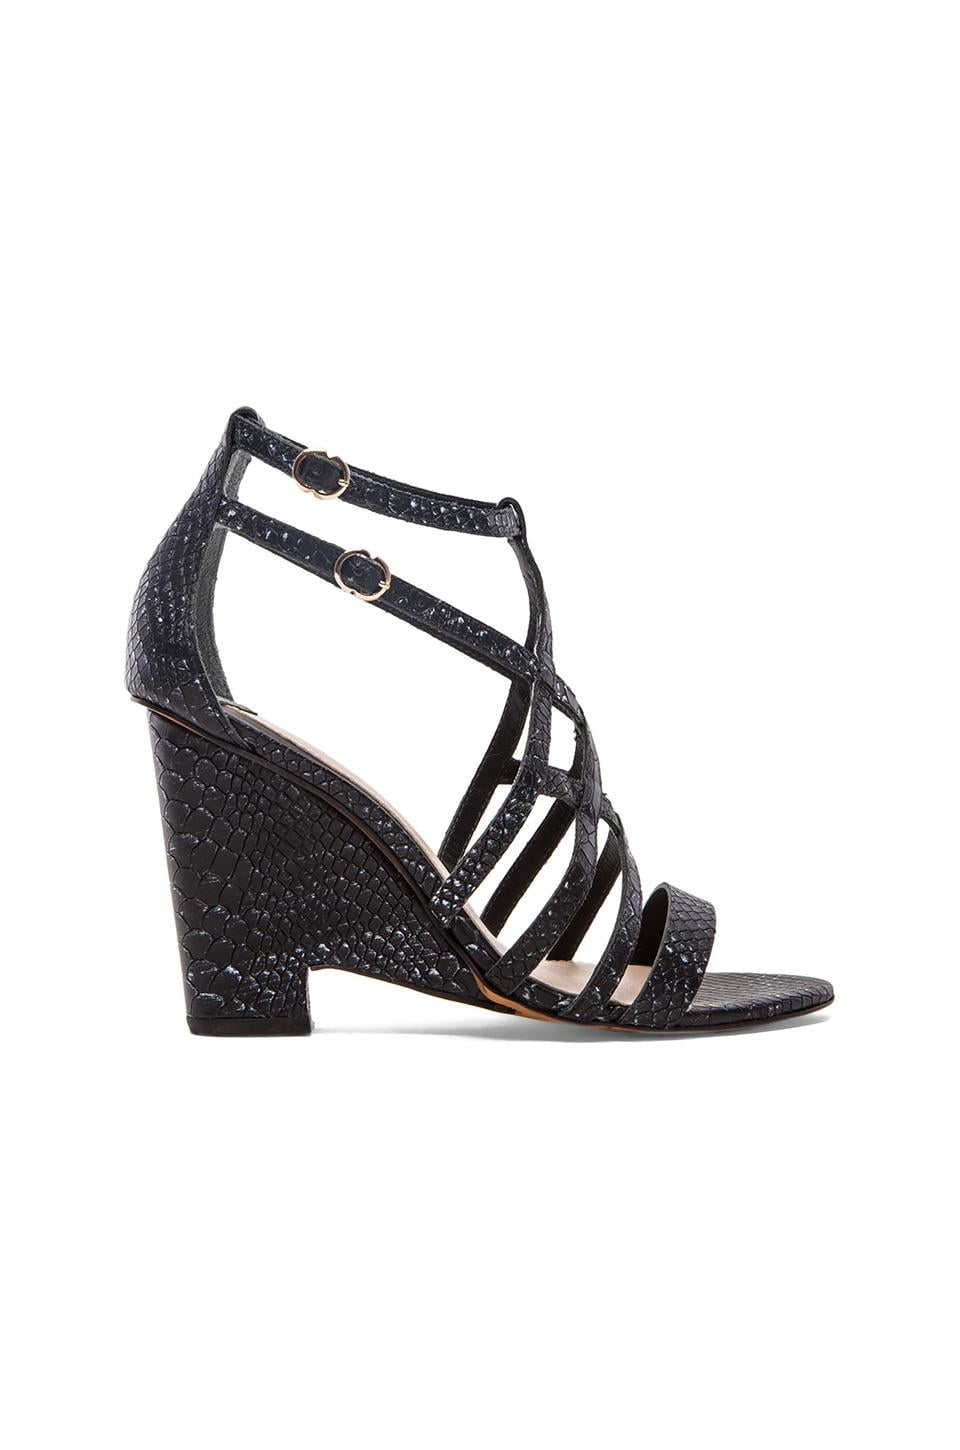 DEREK LAM 10 CROSBY Zanzibar Heel in Black & White Tribal Snake